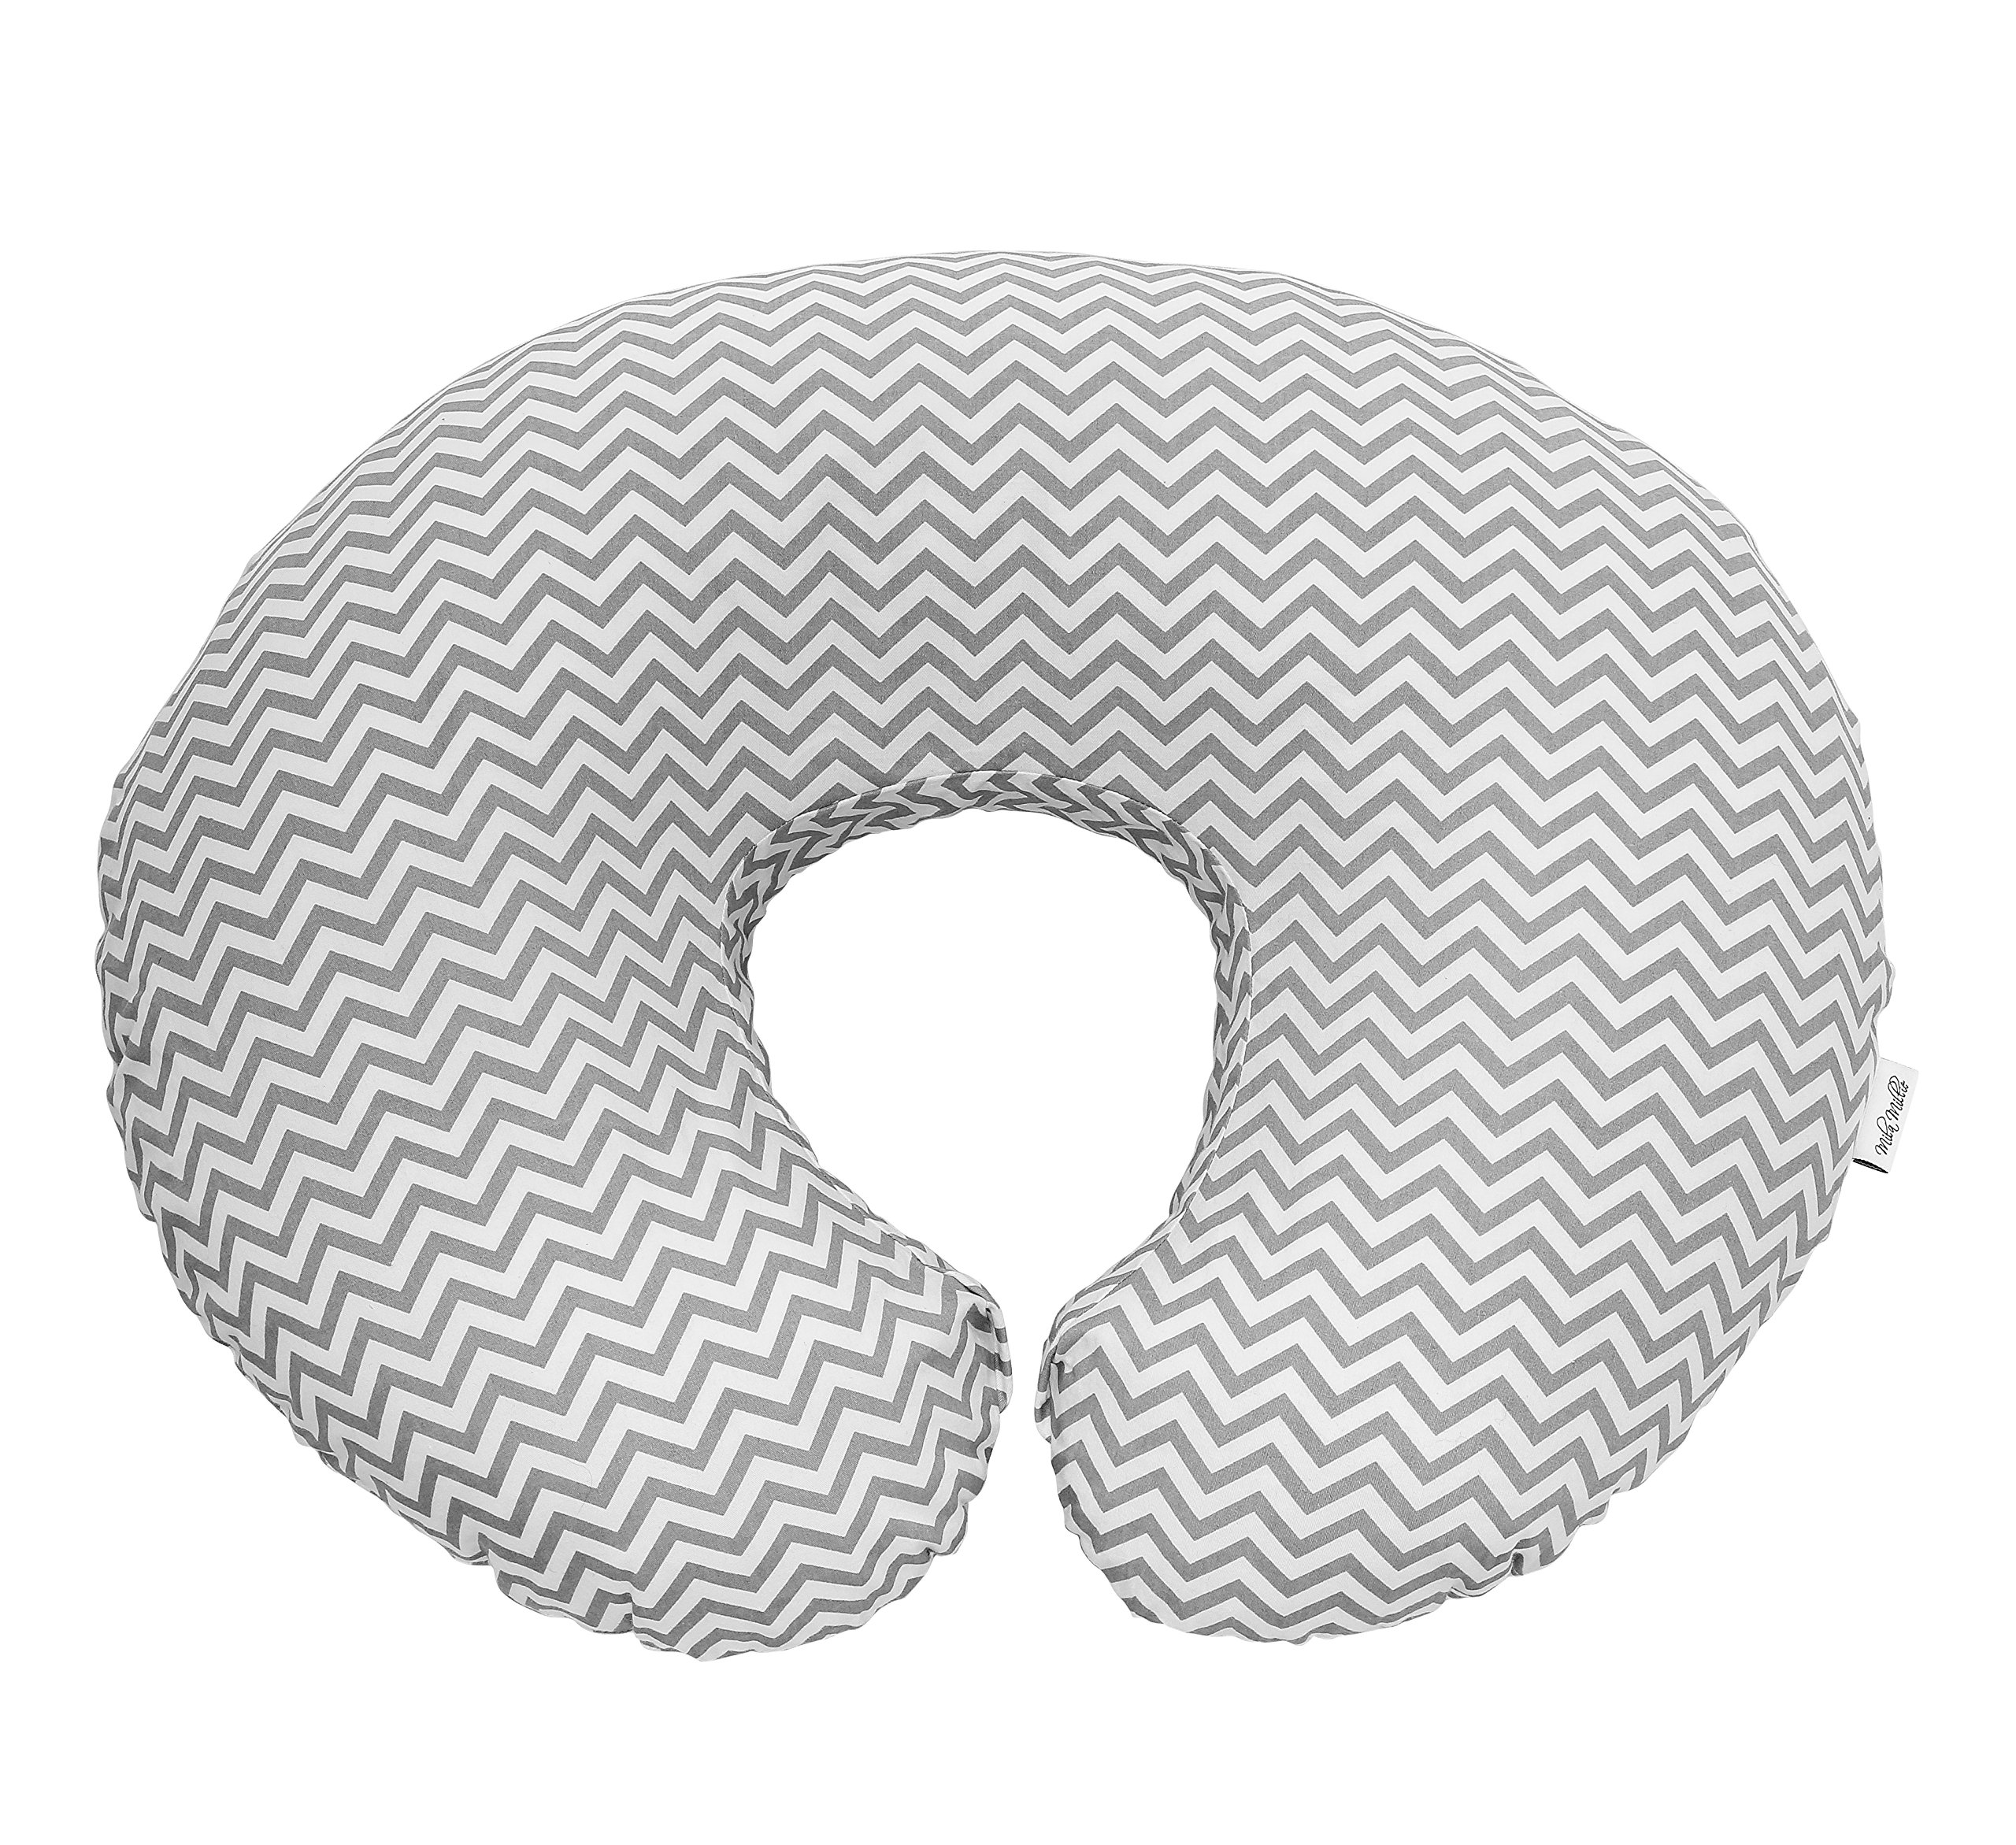 Premium Quality Nursing Pillow Cover by Mila Millie - Gray Chevron Unisex Design Slipcover - 100% Cotton Hypoallergenic - Great for Breastfeeding Mothers - Perfect Baby Shower Gift (Grey) by Mila Millie